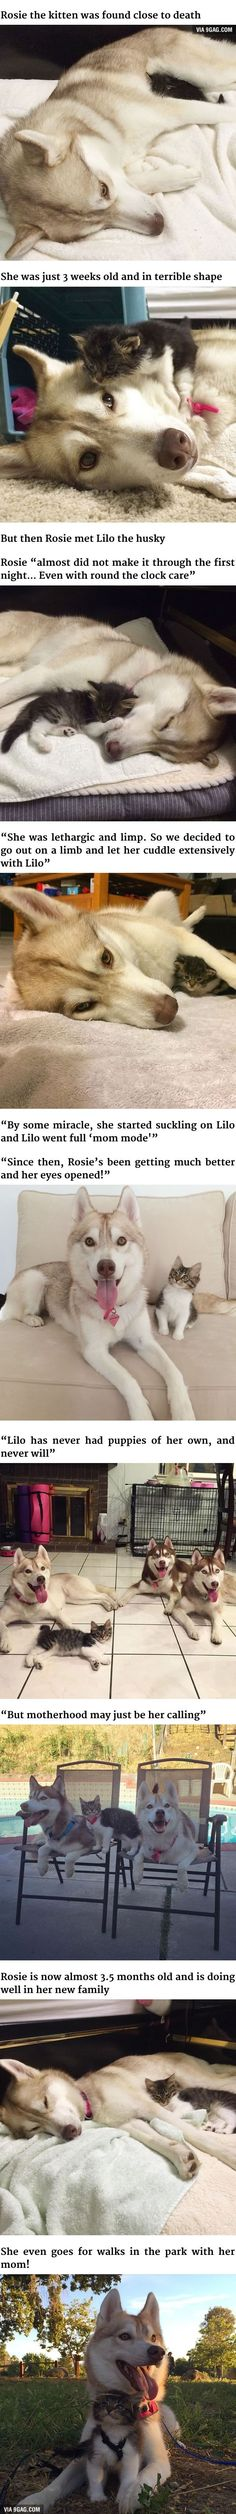 Well, there was a husky that thought she was a cat....so a cat thinking she's a husky is a logical consequence, right? This is so sweet....